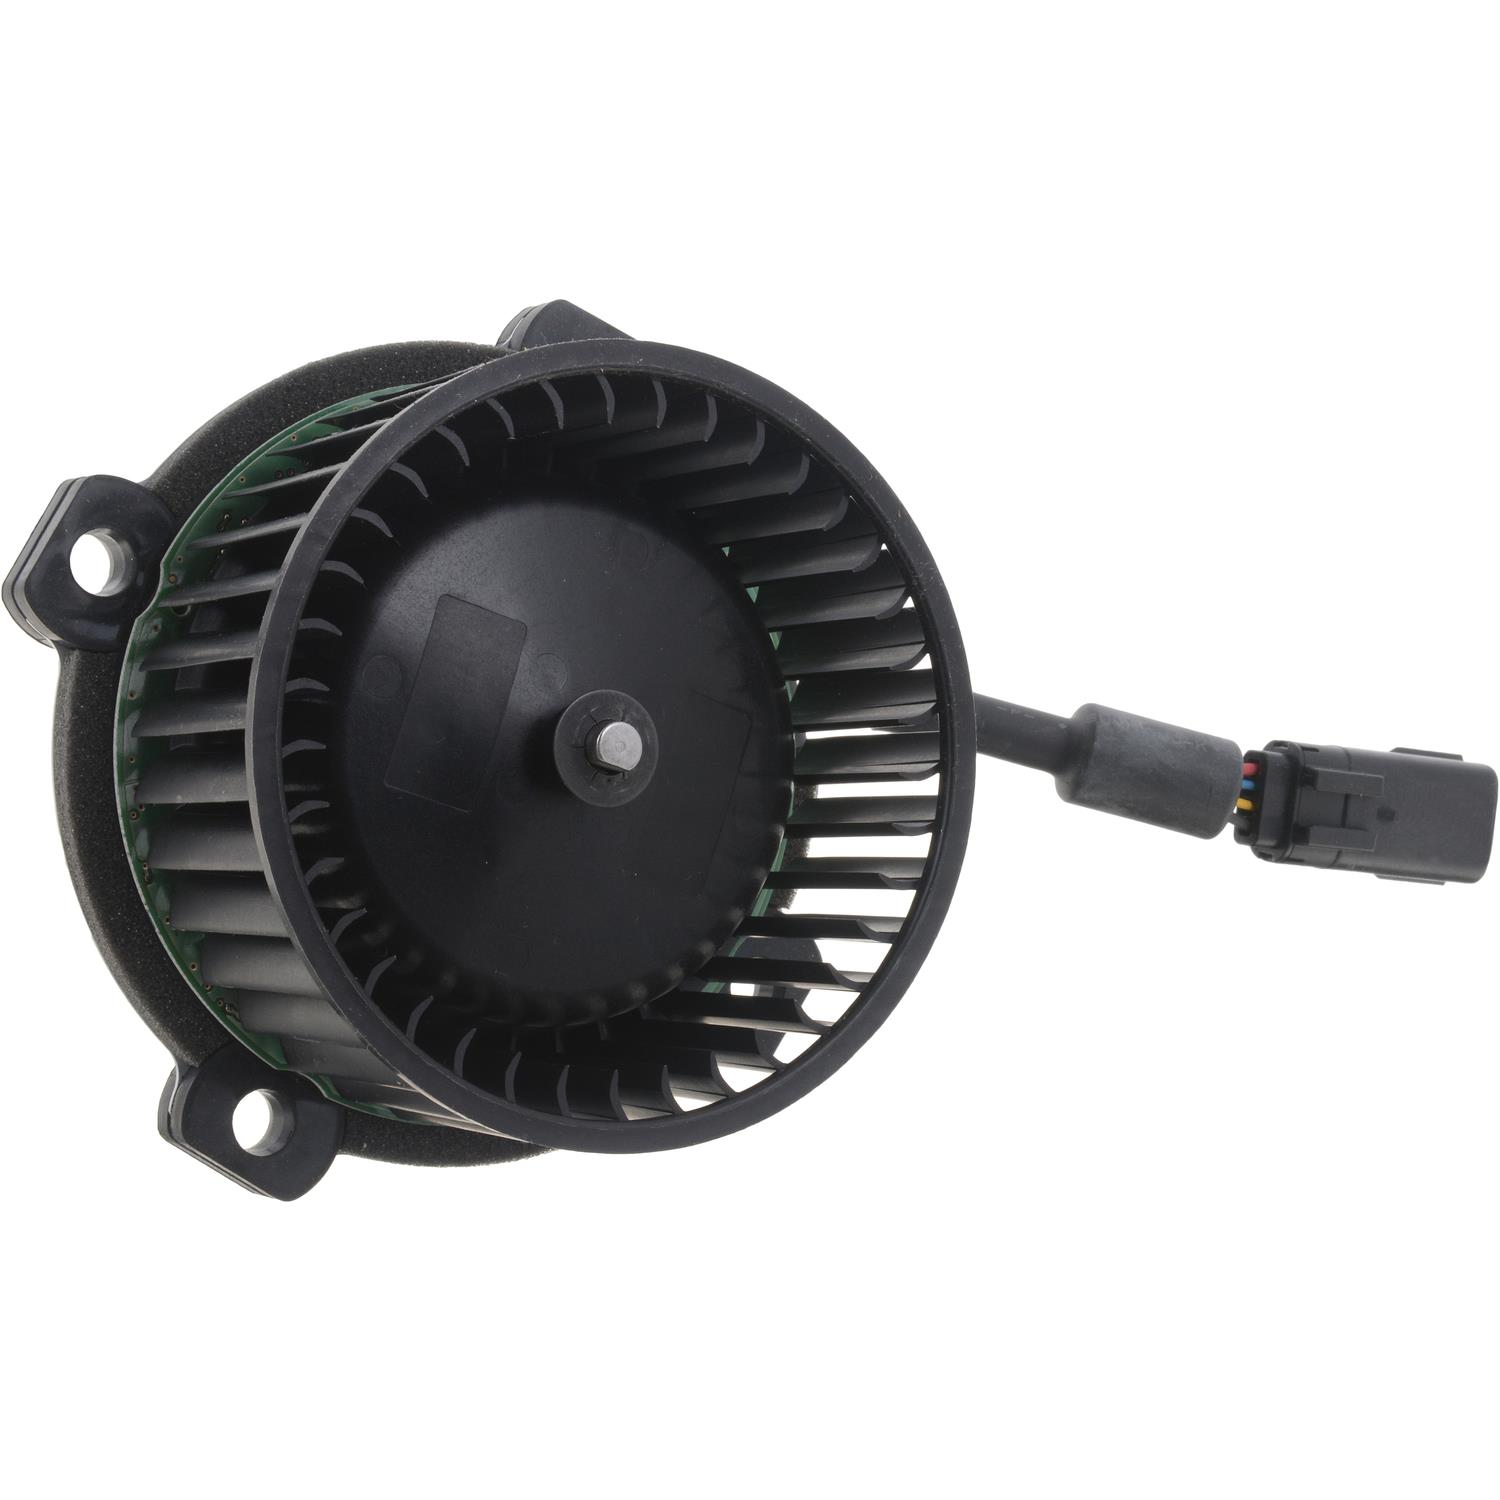 Drive Motor Battery Pack Cooling Fan Motor